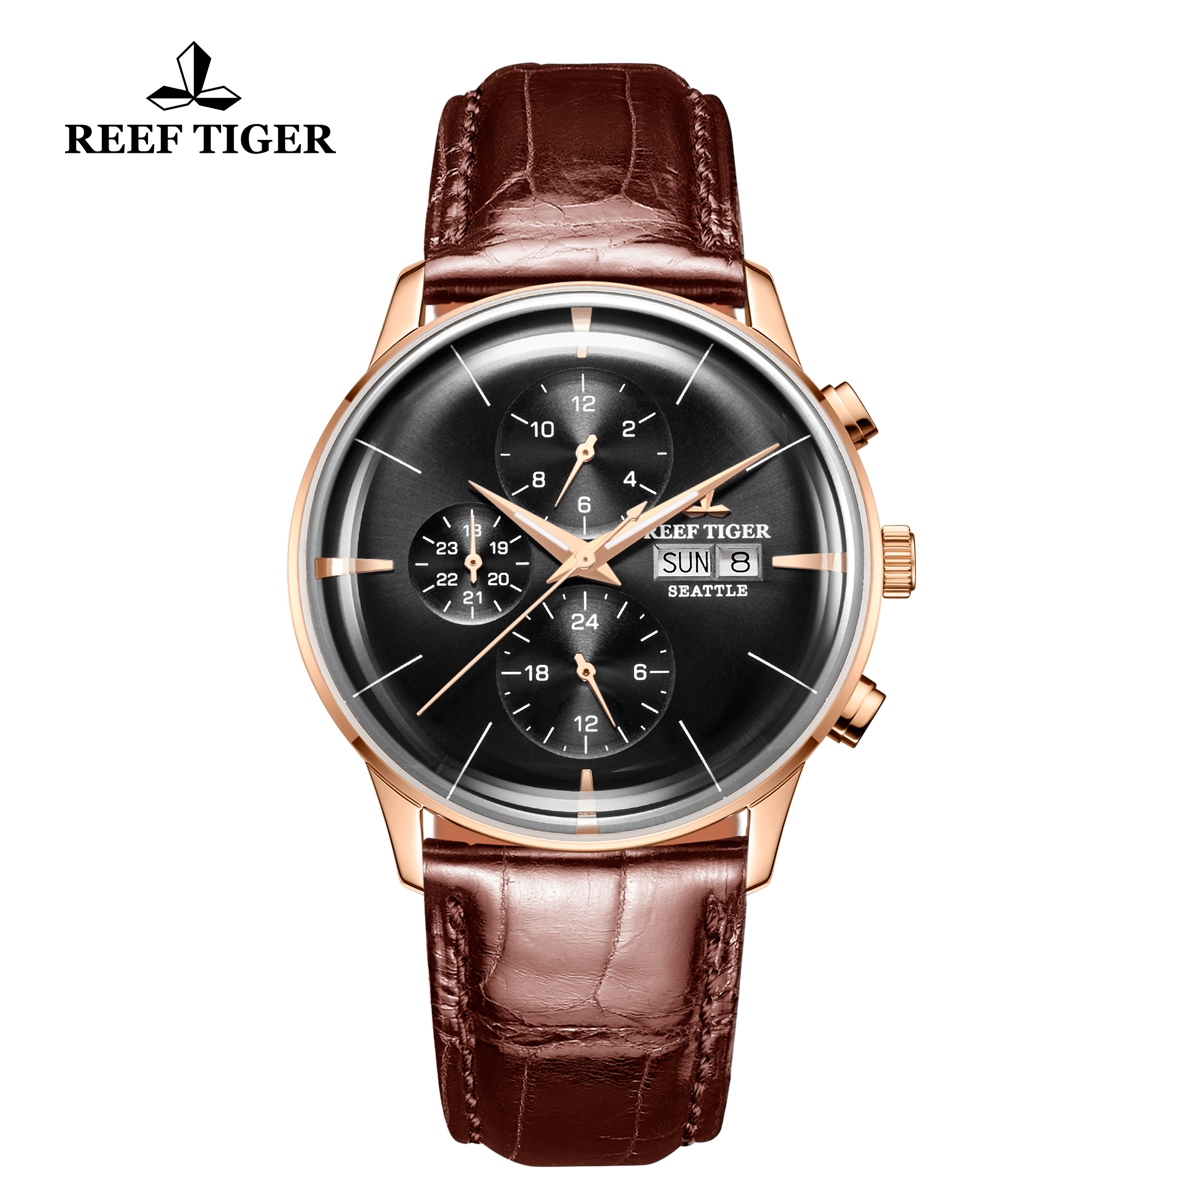 Reef Tiger Seattle Chief Fashion Rose Gold Black Dial Leather Strap Automatic Watch RGA1699-PBS